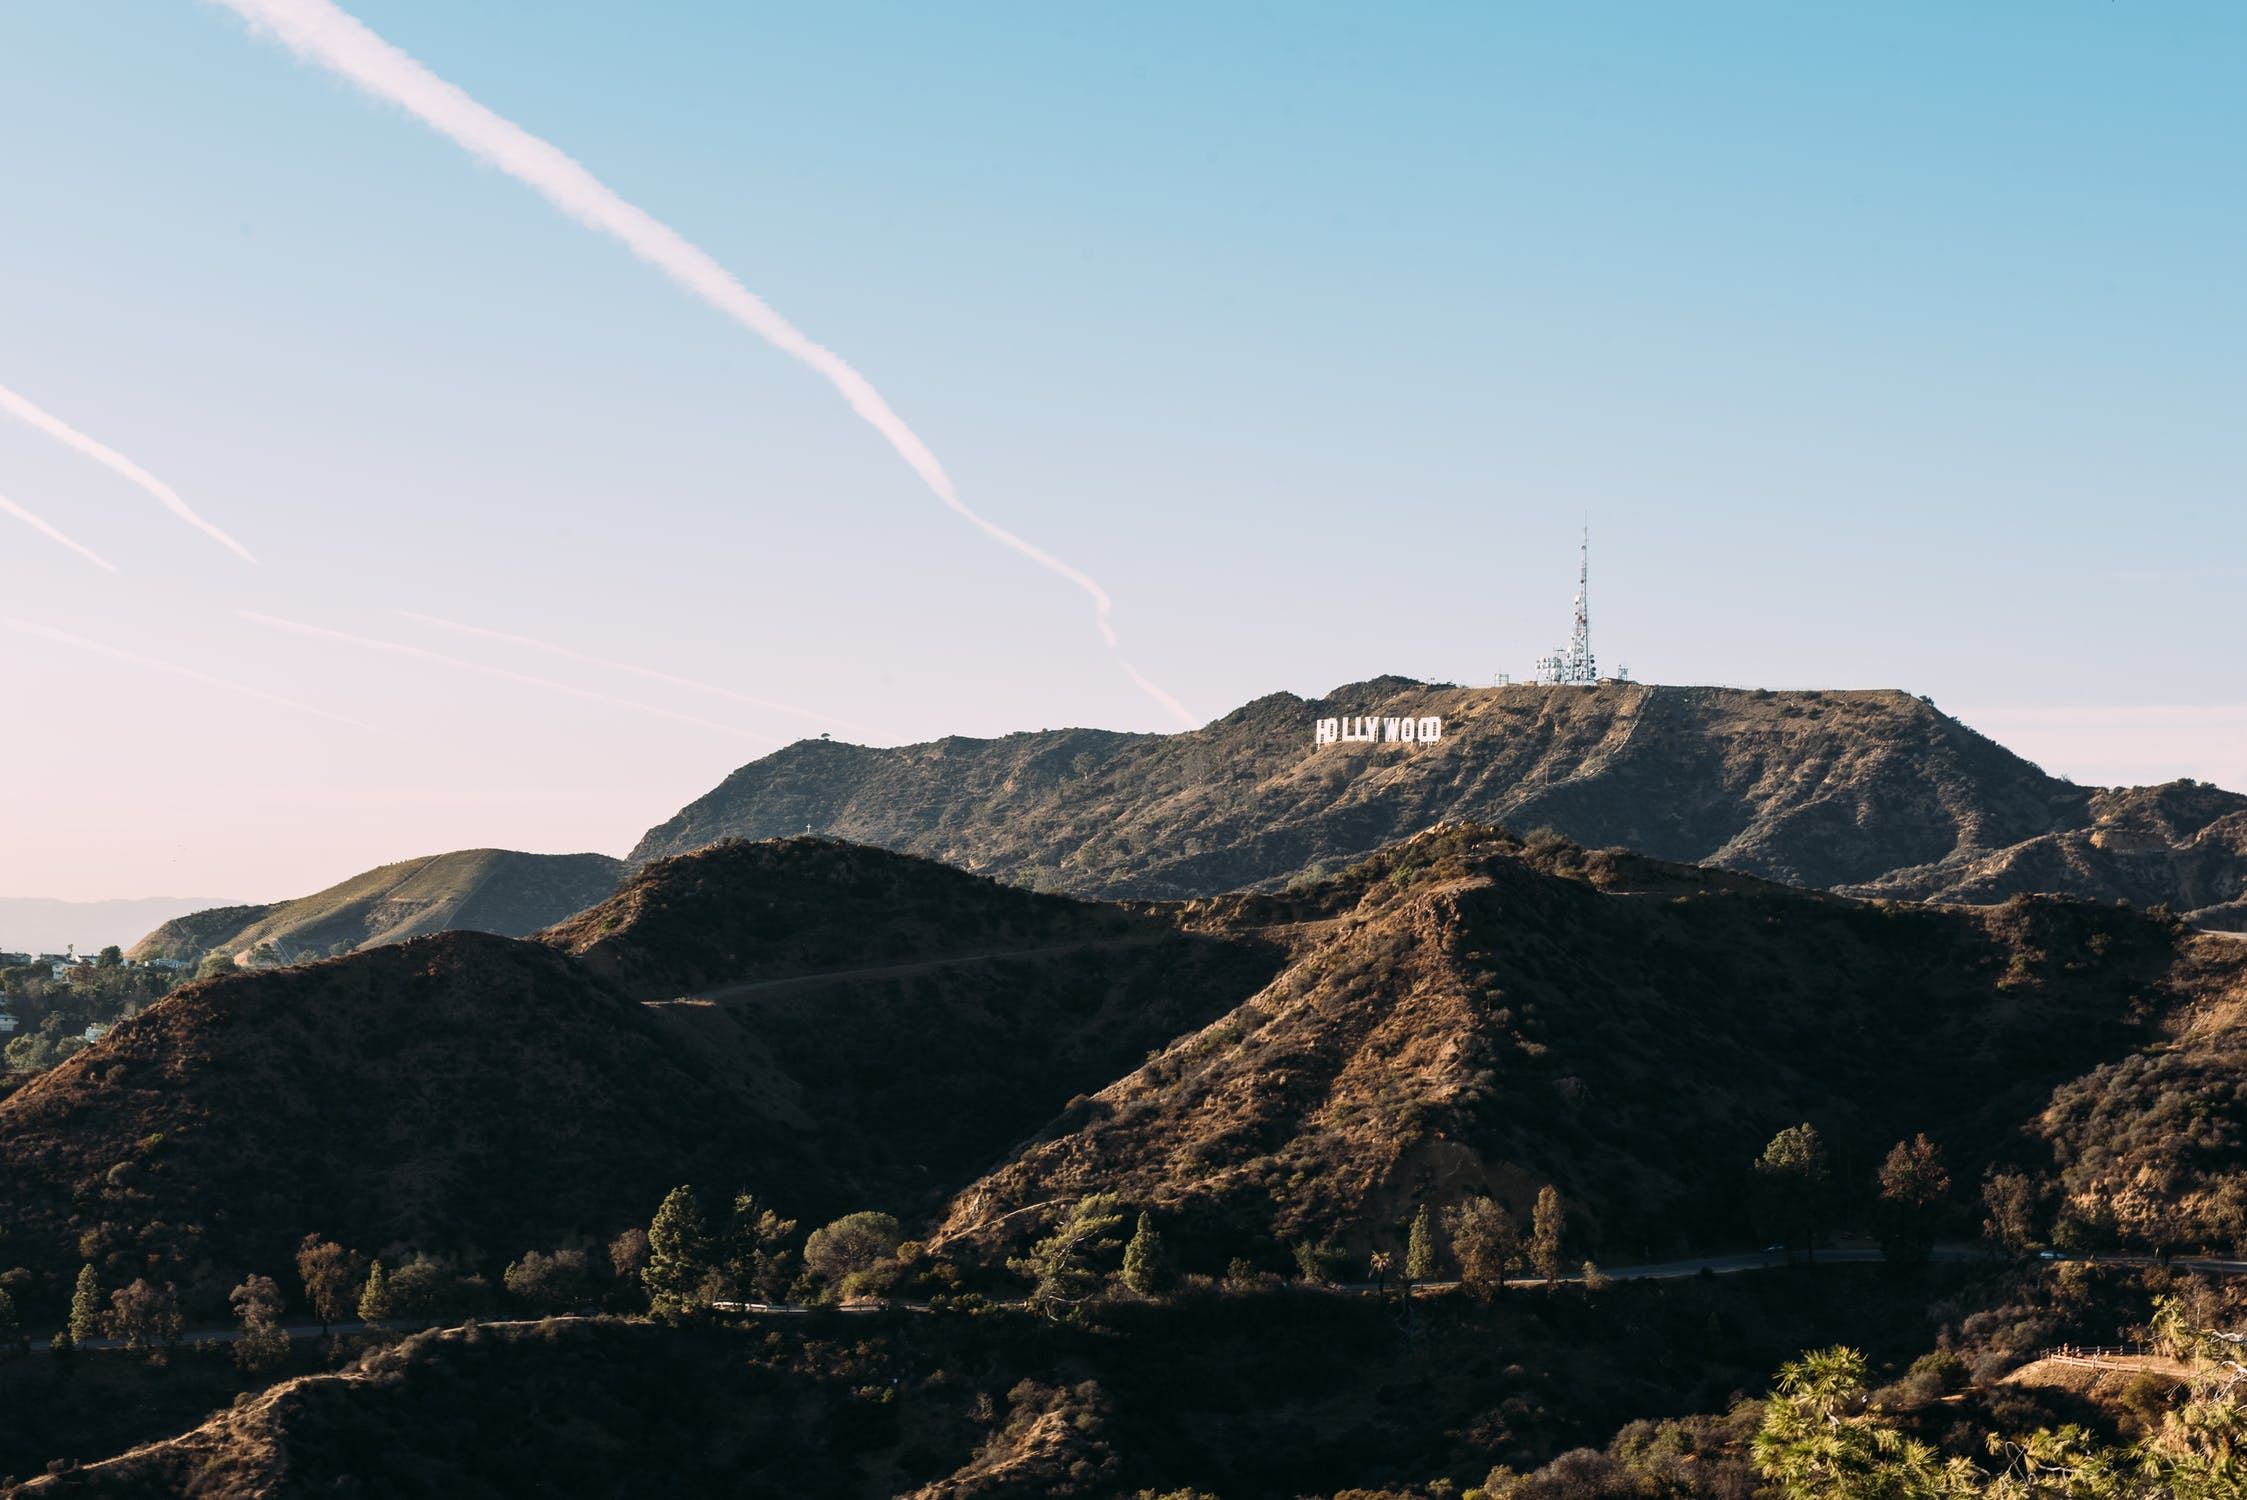 Hollywood sign on the mountains